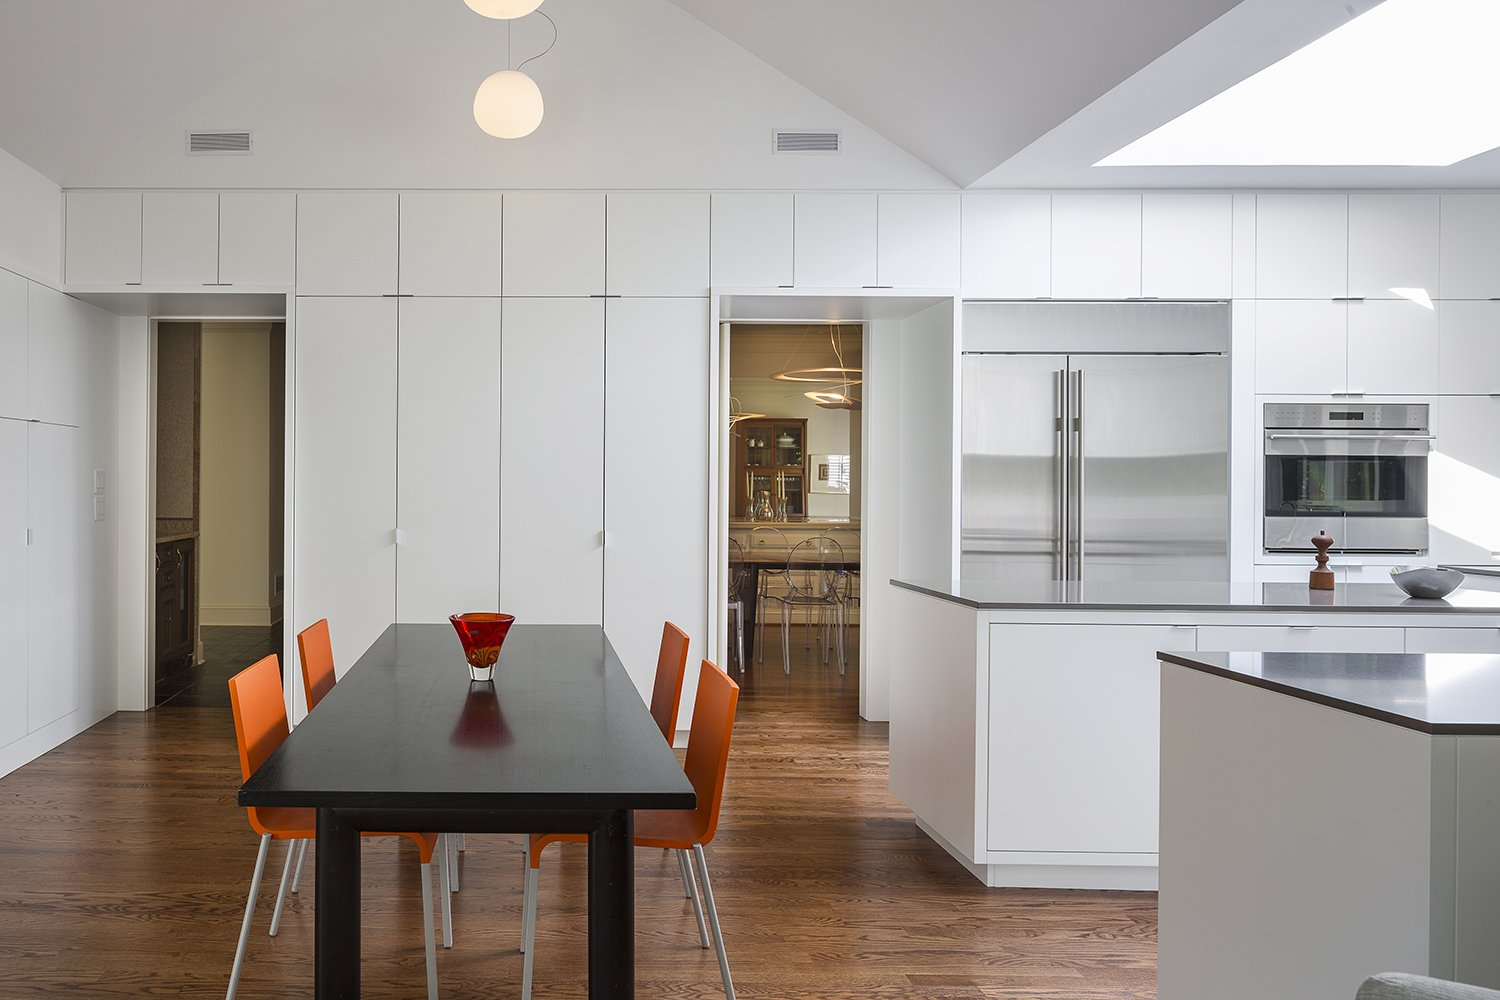 In Leawood, Kansas, Forward Design | Architecture redesigned a kitchen and family room in a traditional home, creating a bright and minimalist space that takes cues from the residents' contemporary furnishings.